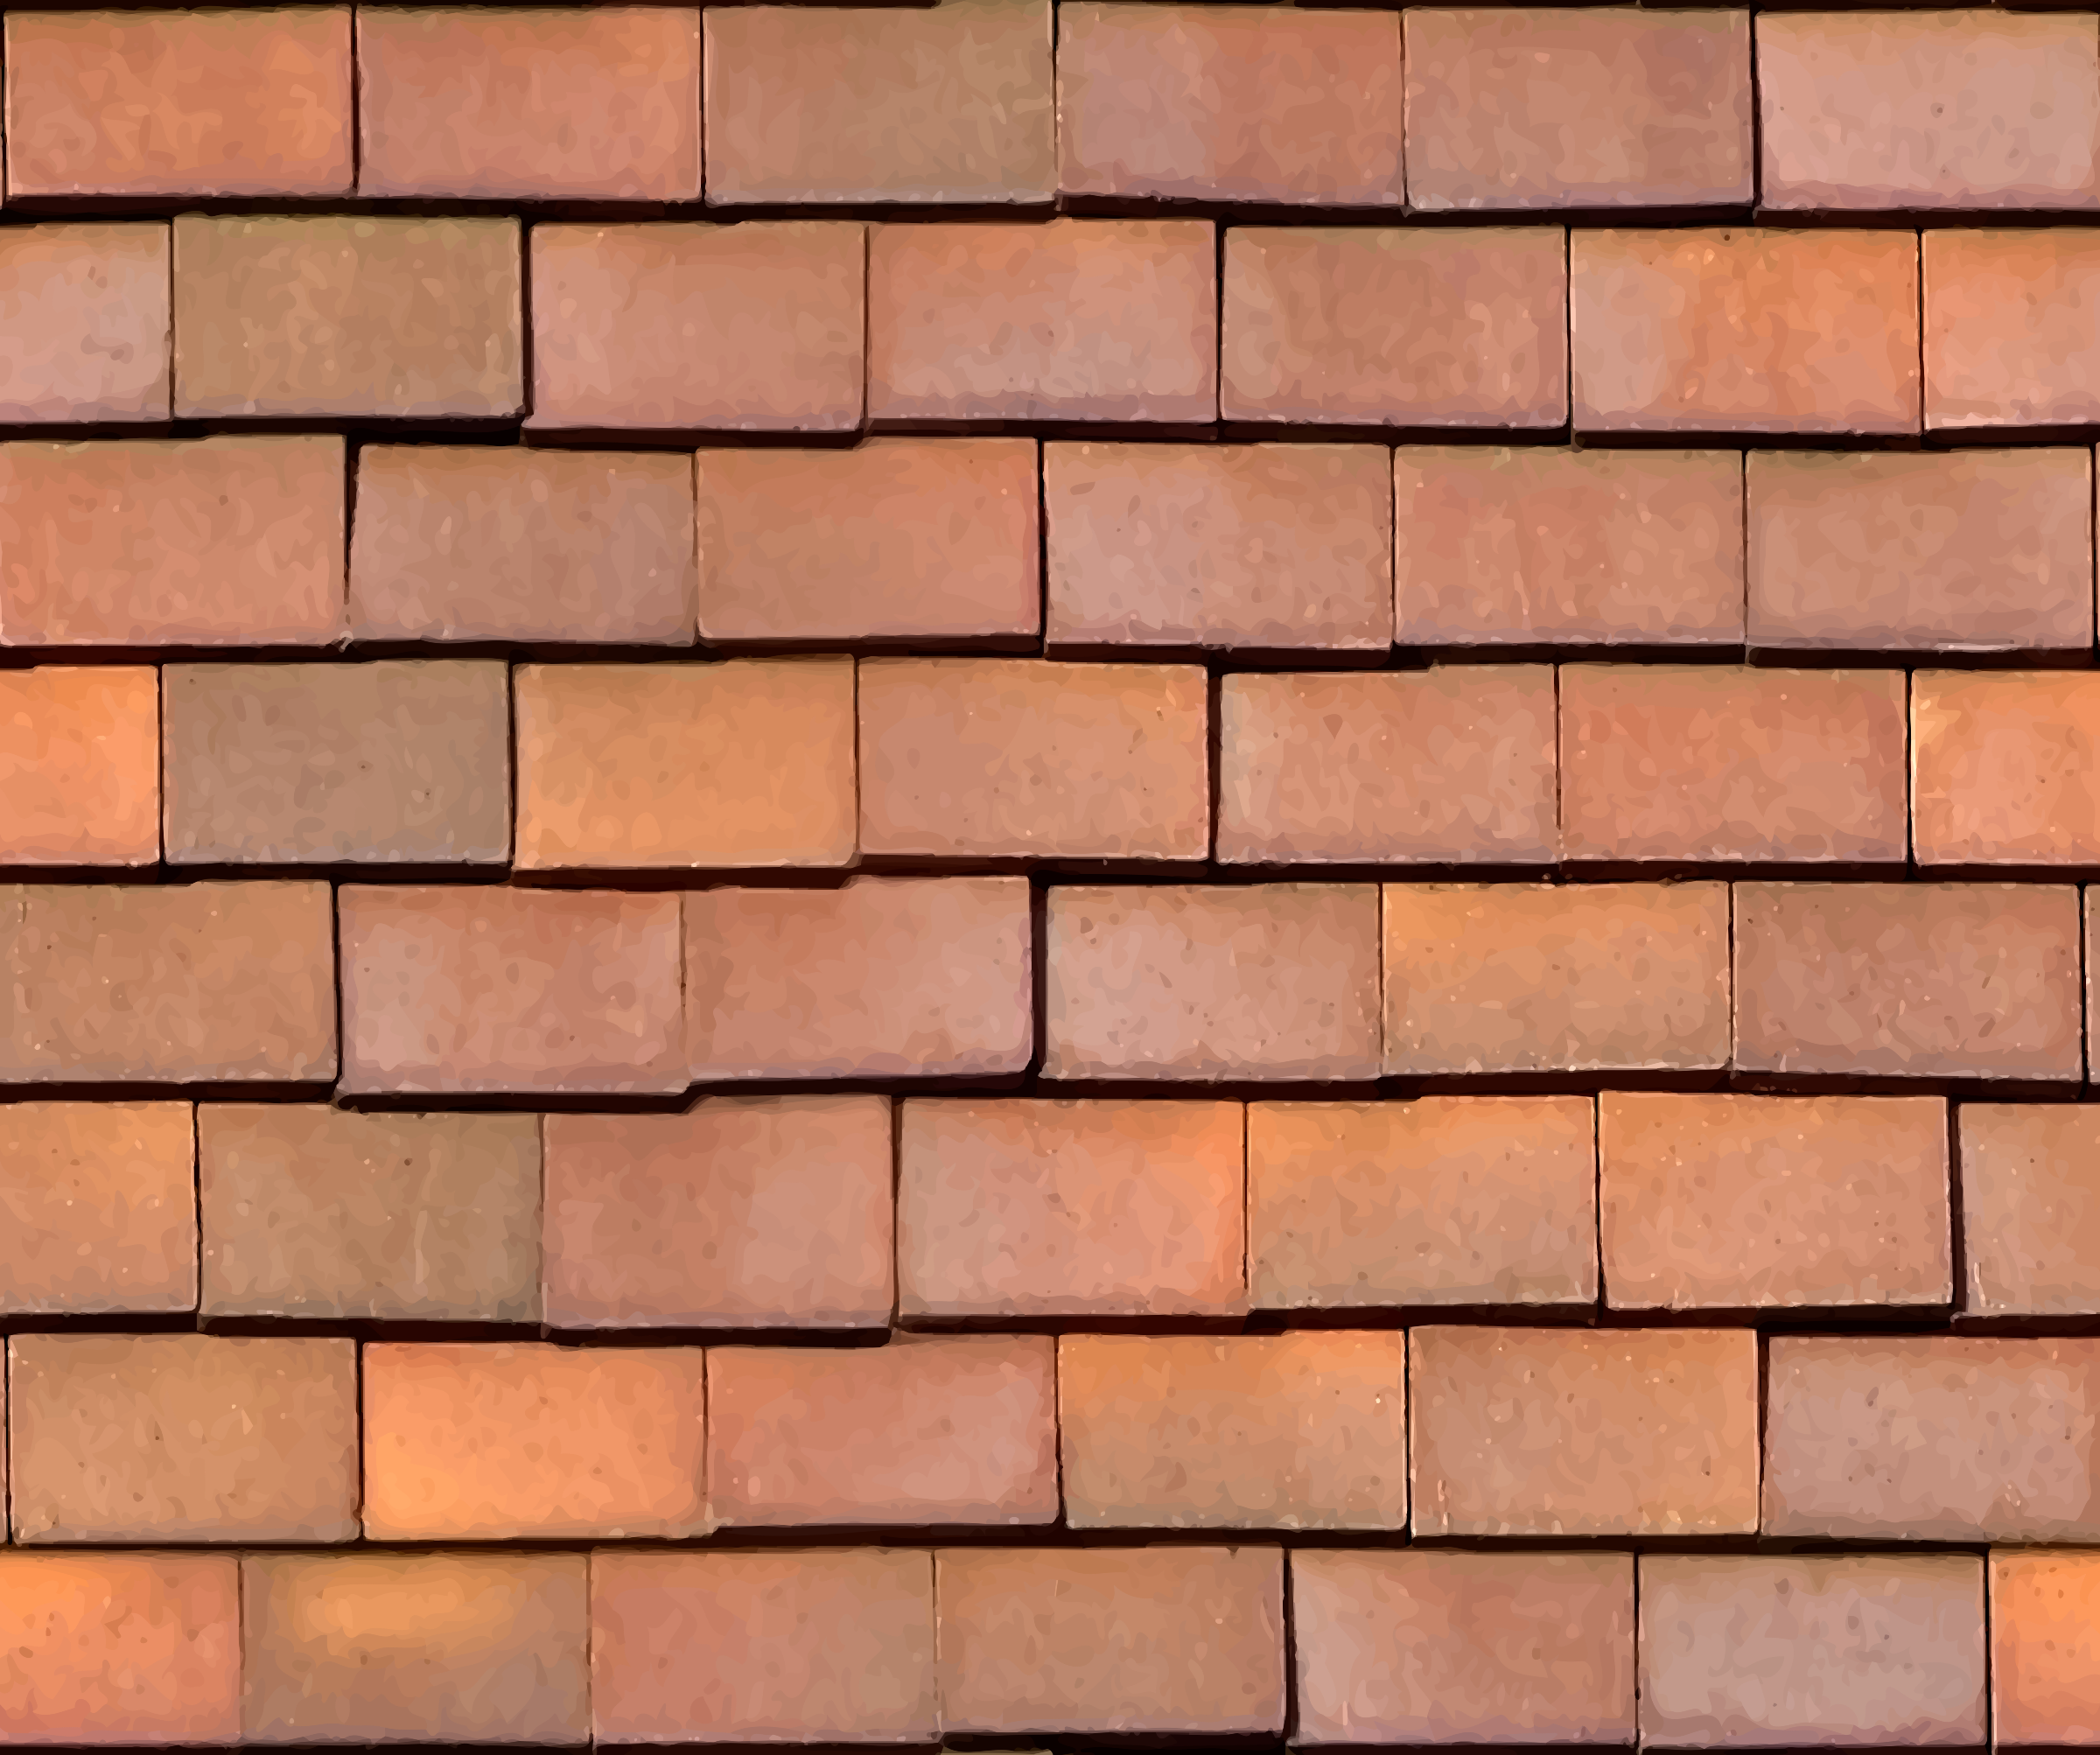 Loose clay roof tiles by Firkin